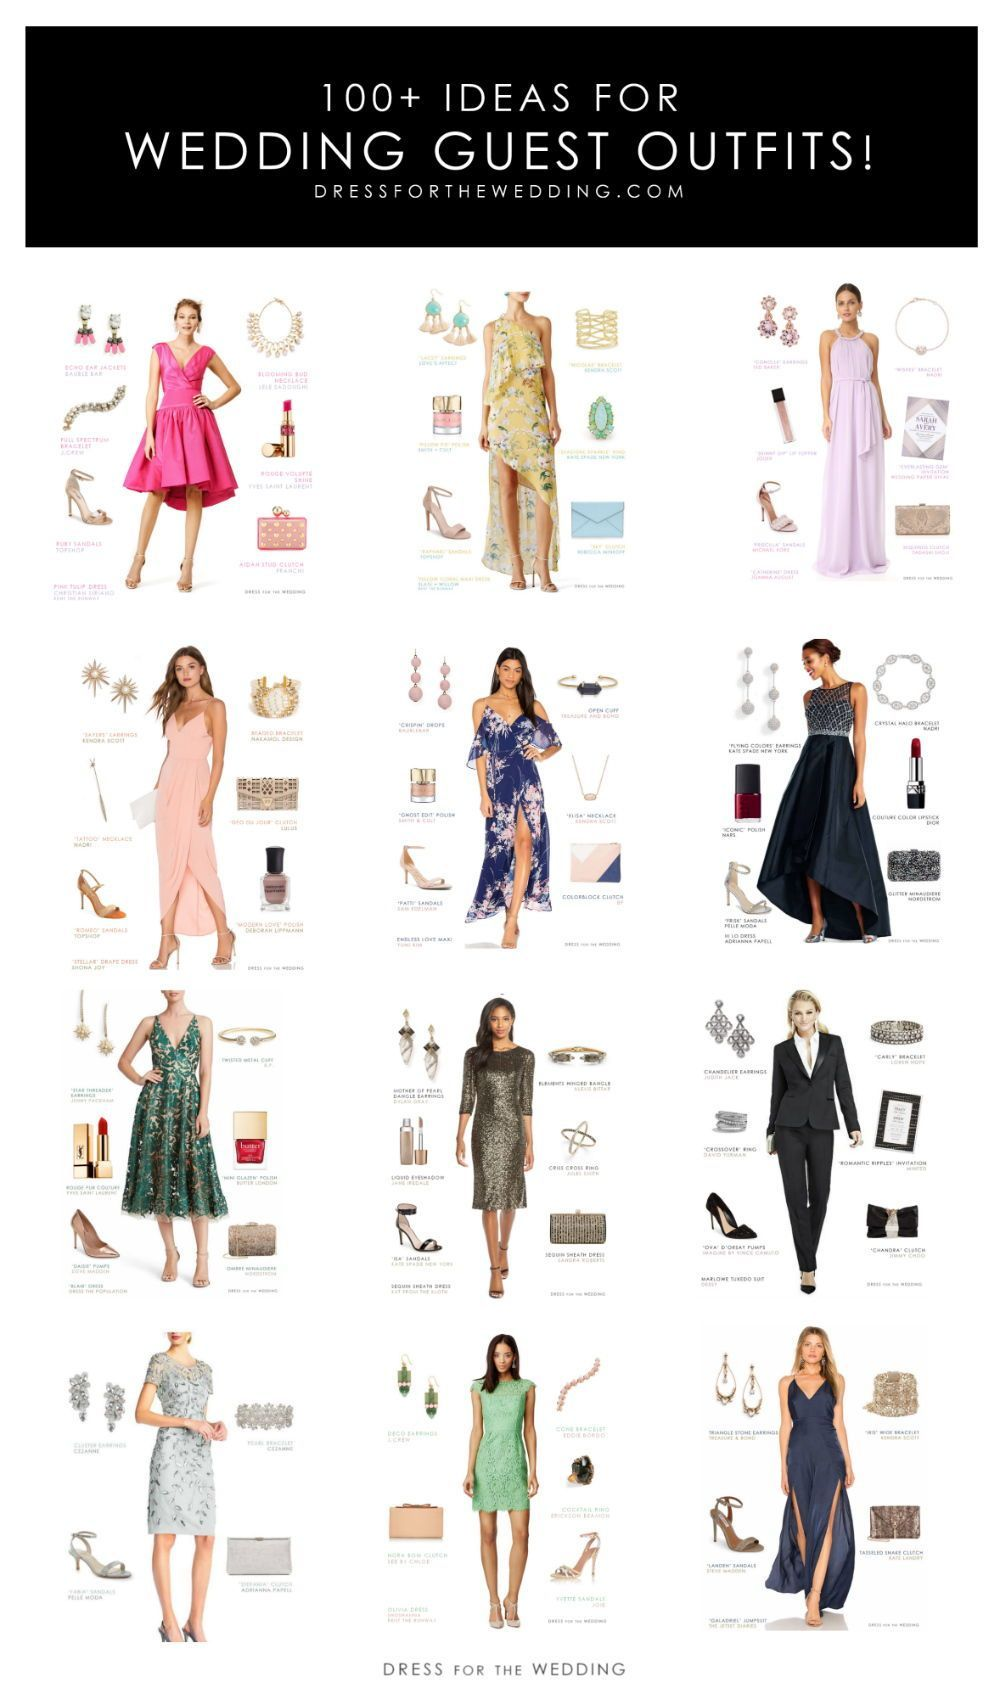 Ideas For Wedding Guest Outfits For Every Wedding Dress Code Weddingguest Summer Wedding Outfit Guest Wedding Guest Dress Summer Cocktail Dress Wedding Guest [ 1687 x 1000 Pixel ]